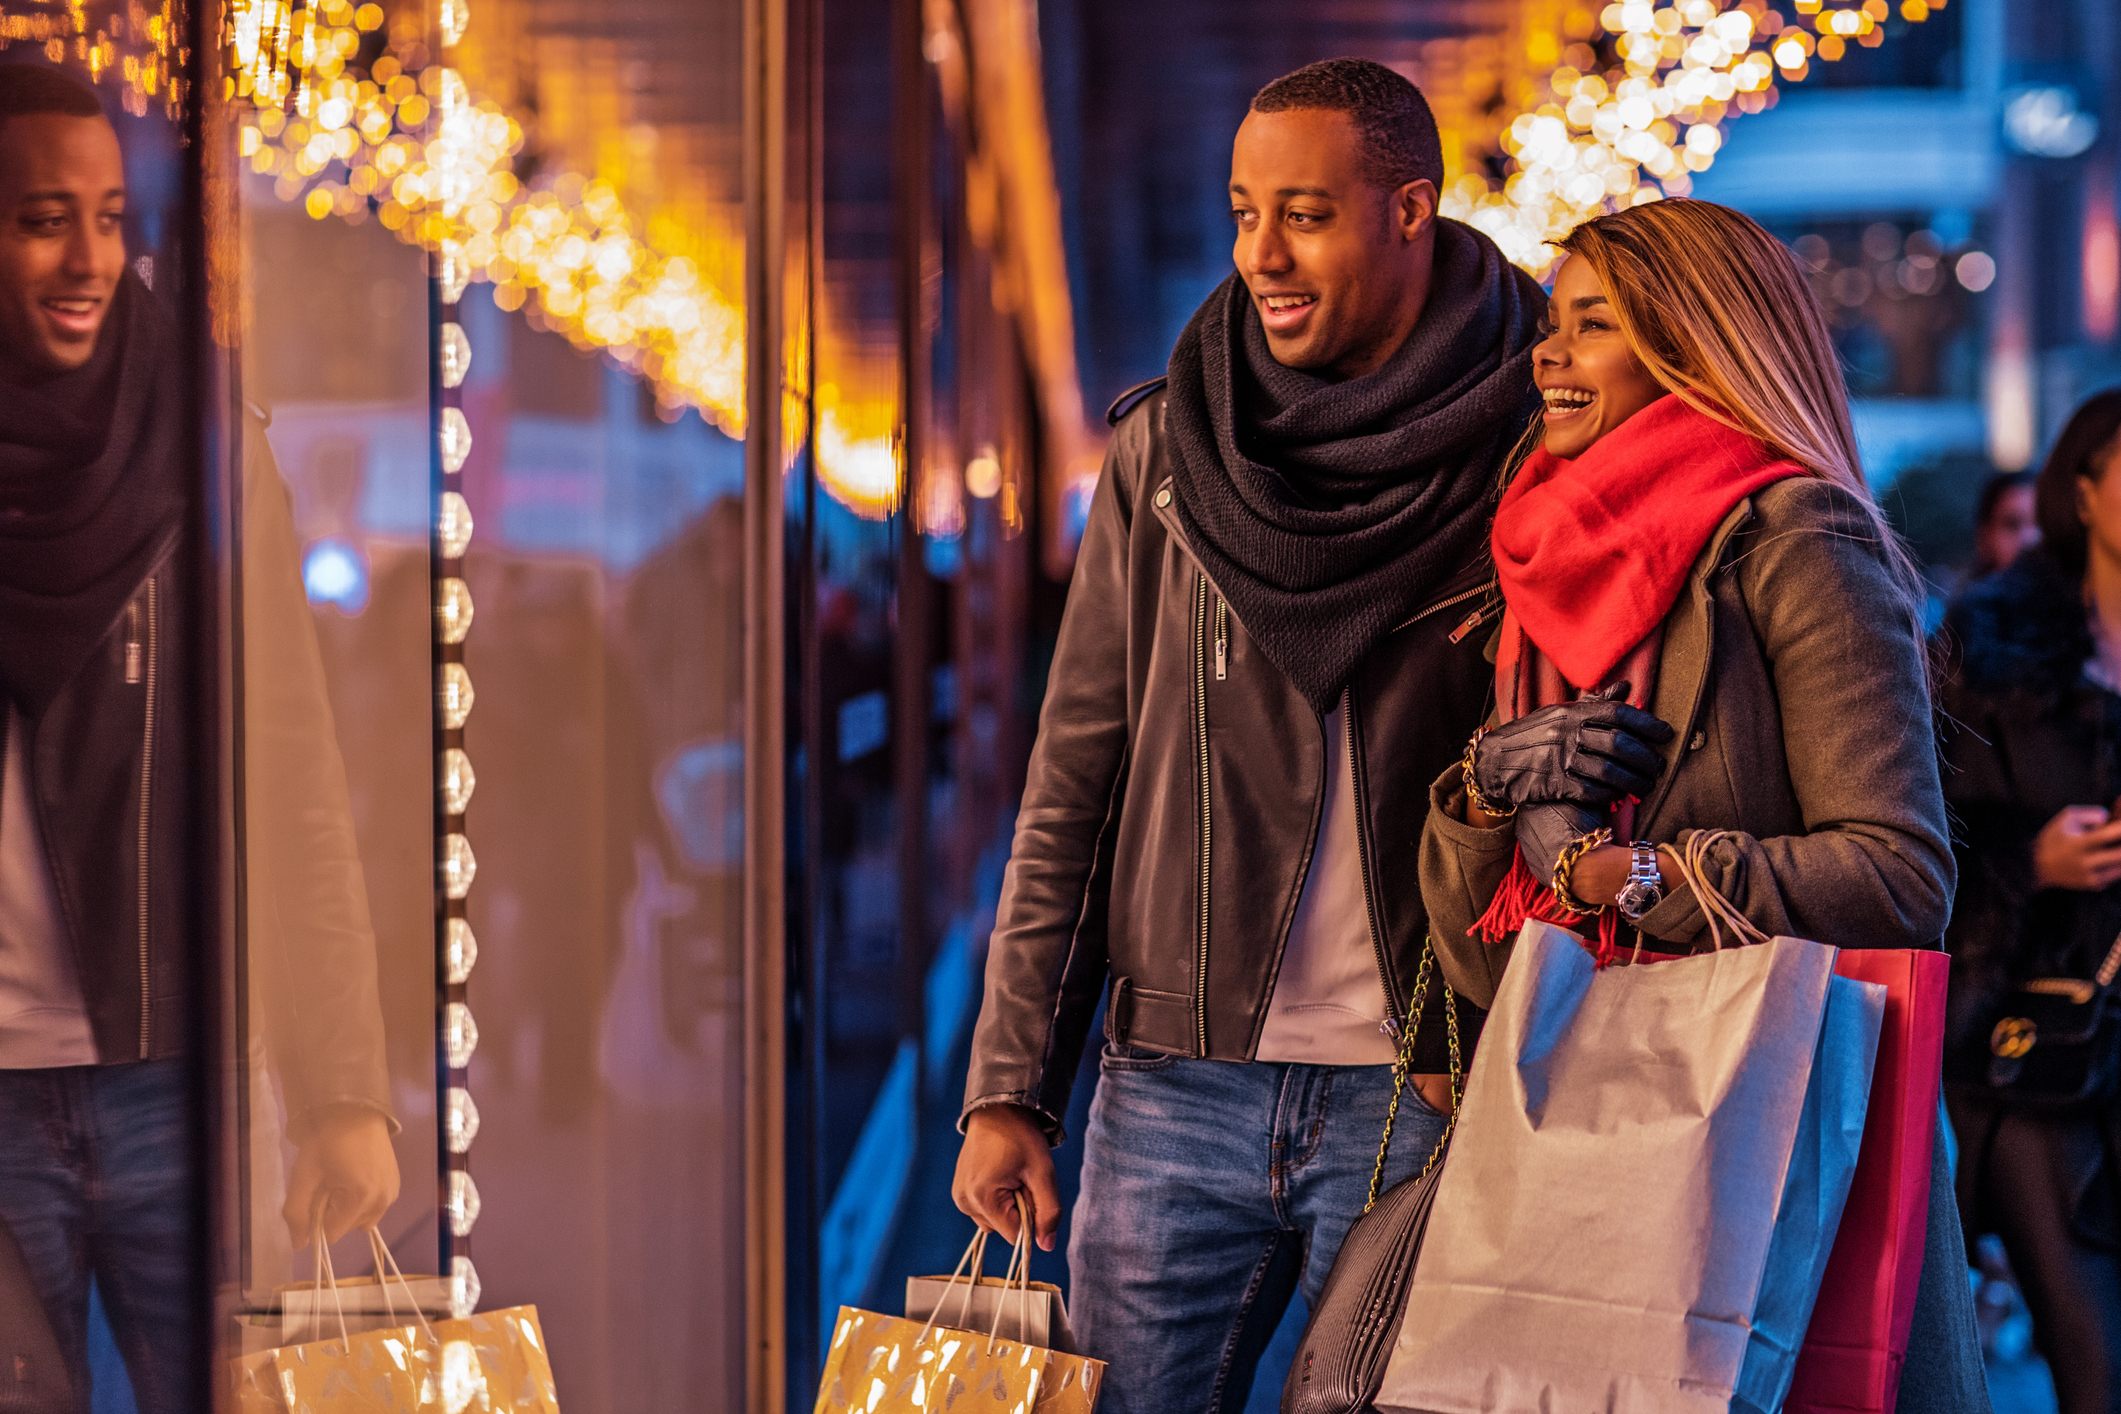 Lackluster retail sales in November signal sluggish start to key holiday season